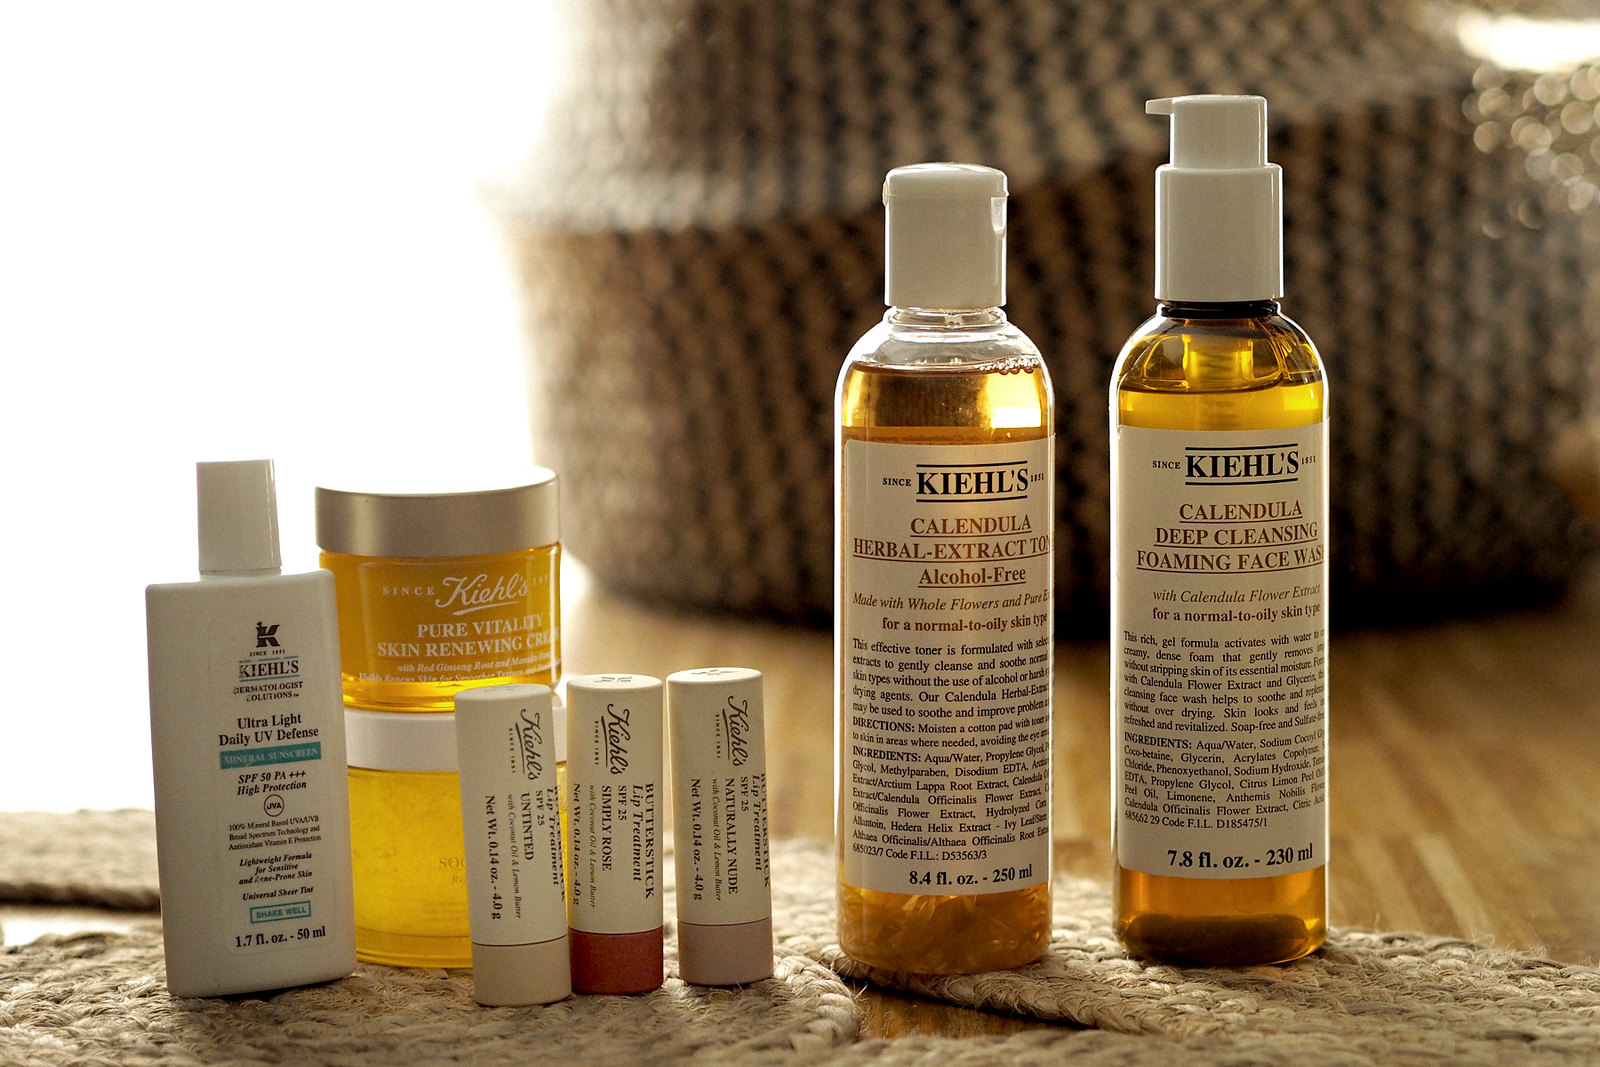 kiehl's morning routine beauty beautyblogger golden light amber beautiful wood calendula cleansing moisturizing mask skincare apothecary video blogger vlogger cats & dogs beautblog ricarda schernus düsseldorf max bechmann fotografie film nrw blog 5